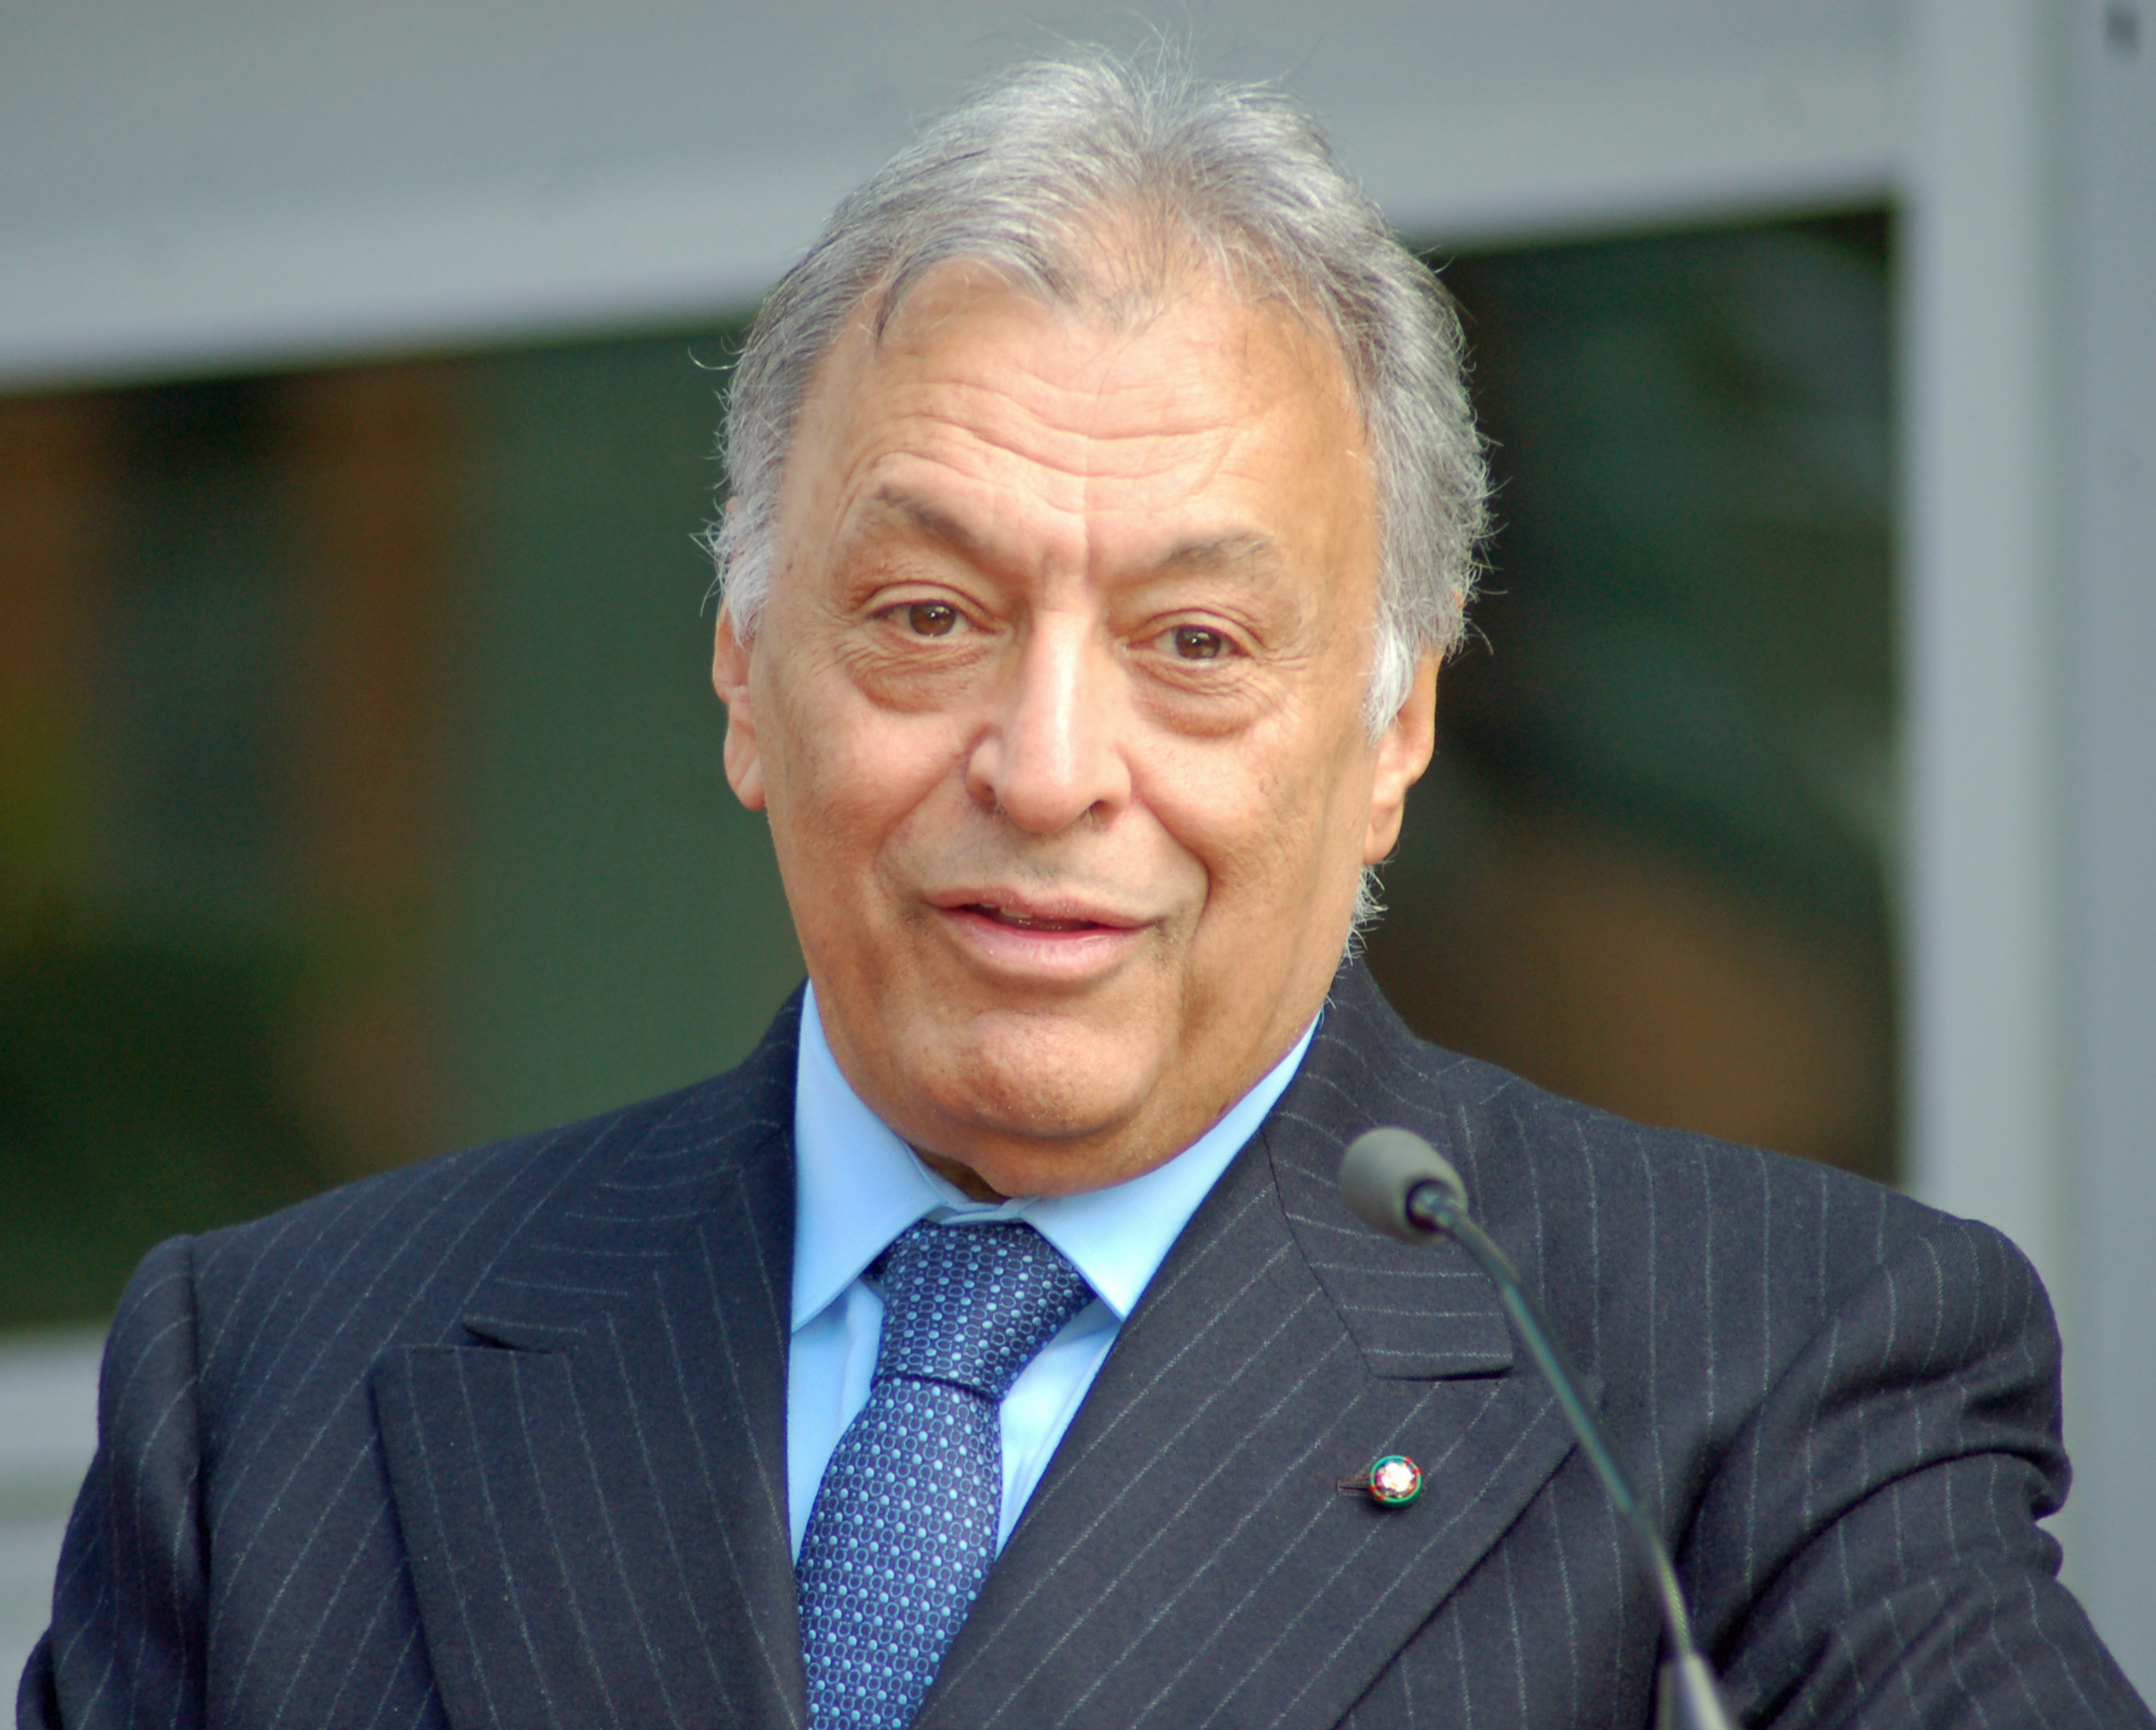 ZUBIN MEHTA - Wikipedia, the free encyclopedia